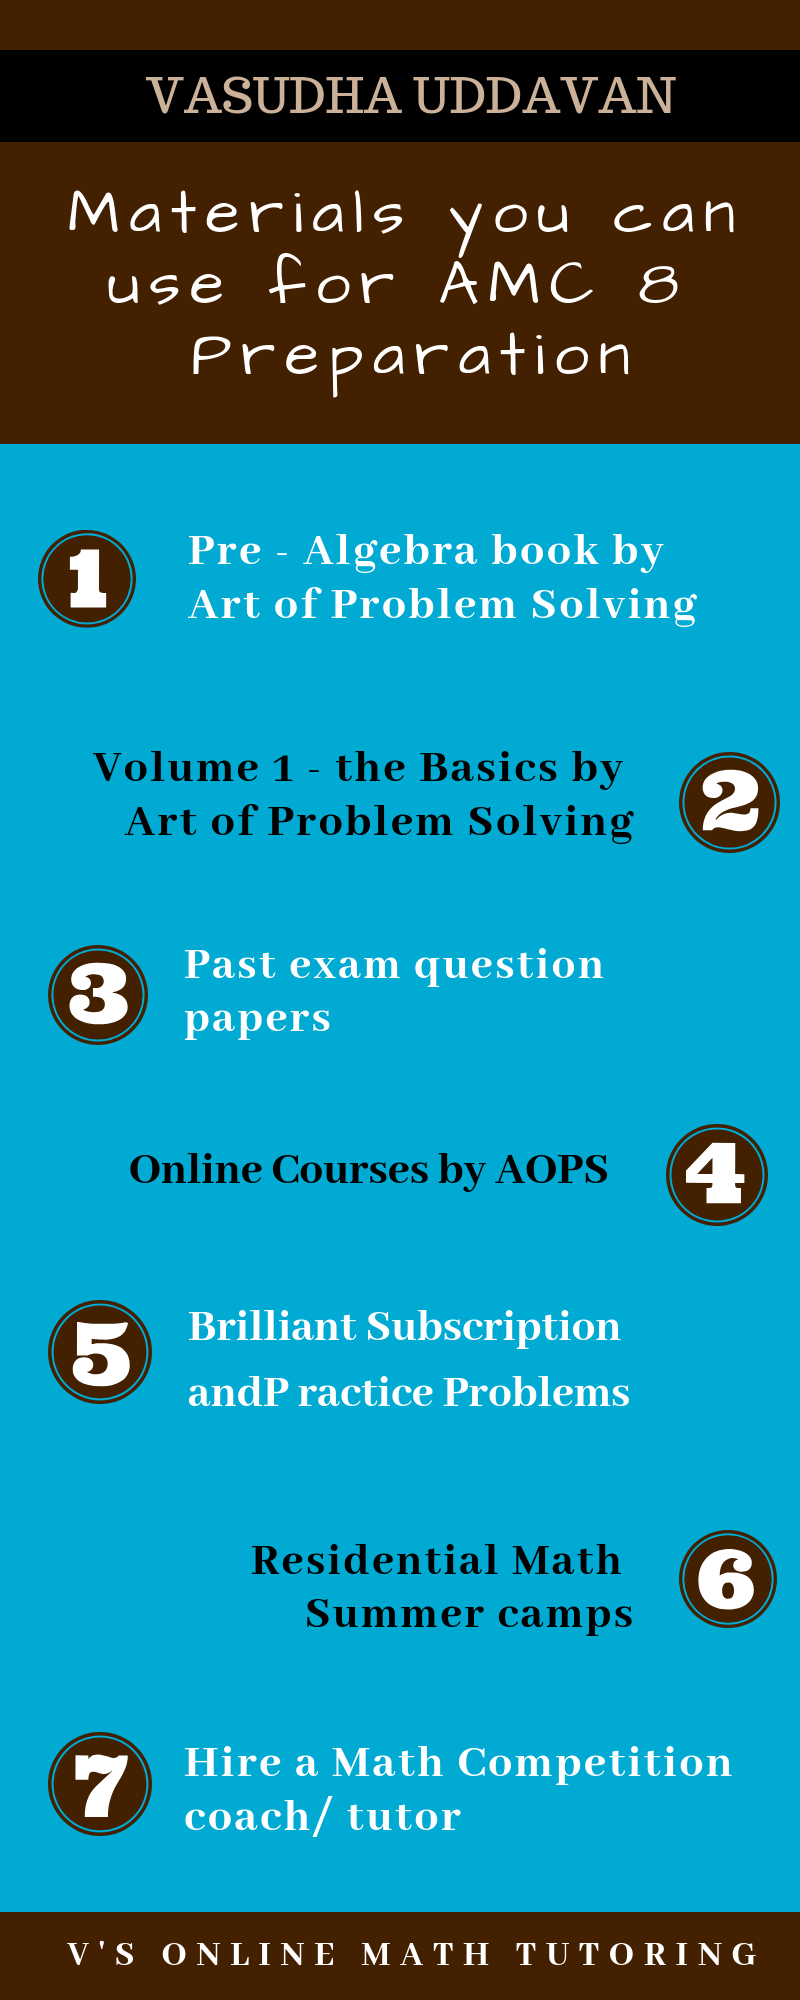 How to prepare for AMC 8 | Middle school math | Math tutor